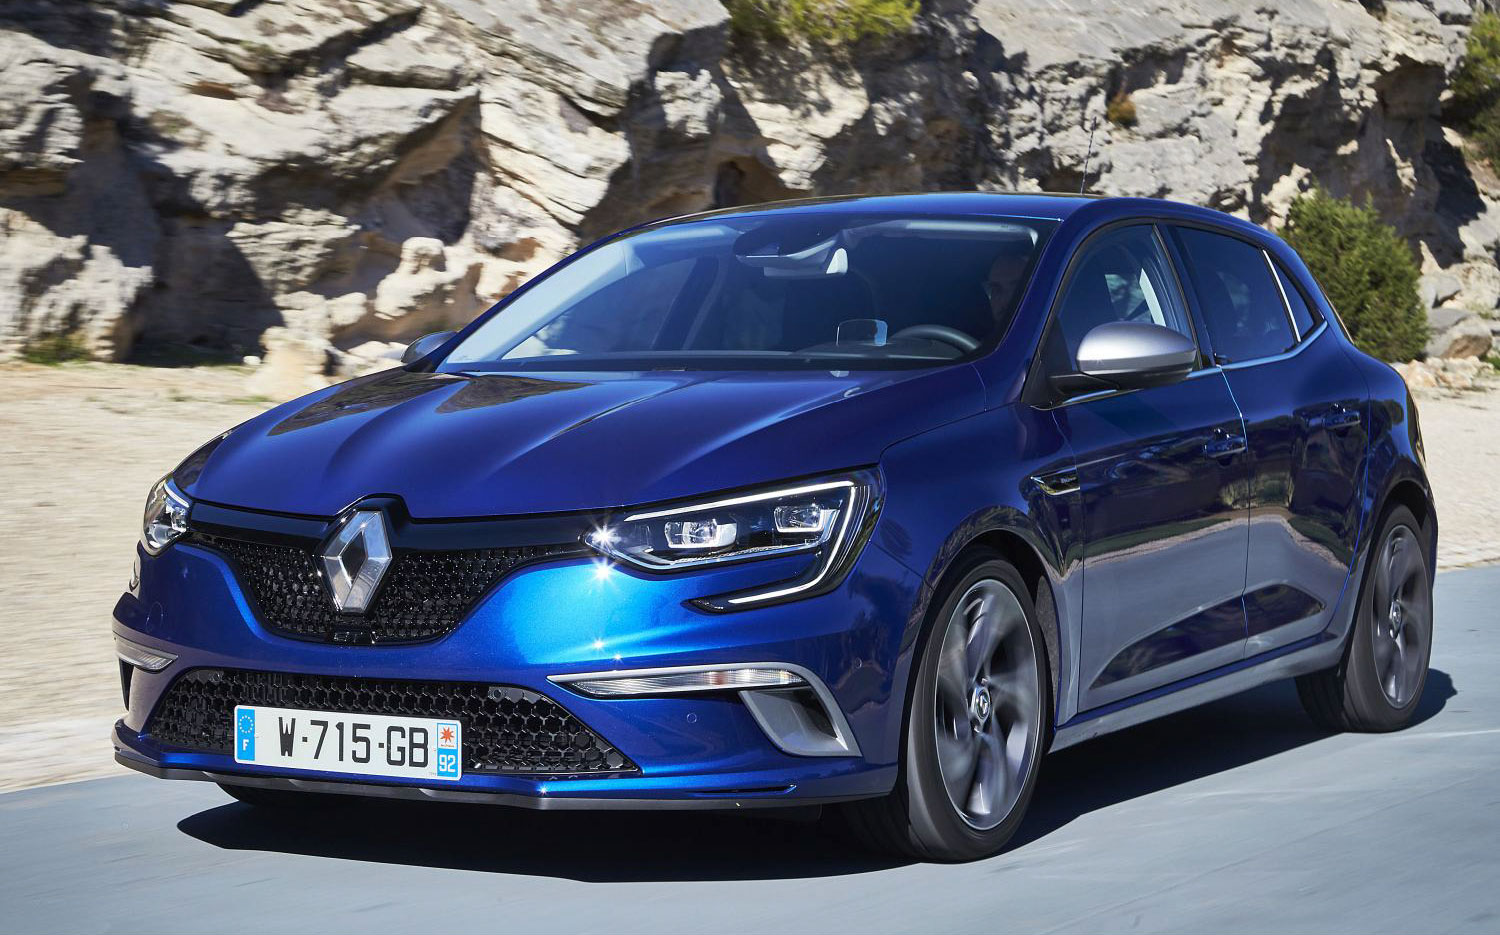 what do you guys think of the new generation renault megane rh carthrottle com Homelite 240 Chainsaw Manual Forum Snowboard 2008